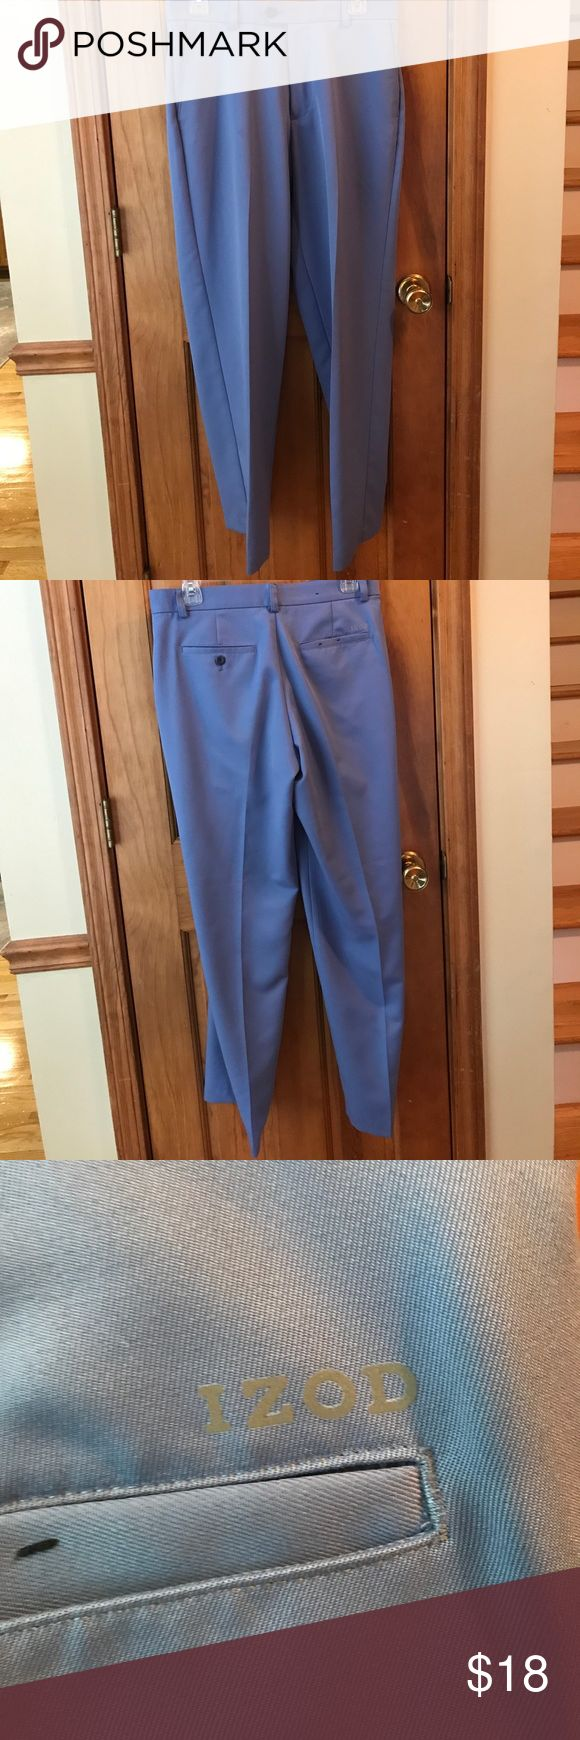 Izod Golf Pants 🏌 ⛳️ These Izod Golf pants are in perfect condition! These are light blue and great for spring and summer (and winter). ⛳️🏌🏻 Izod Pants